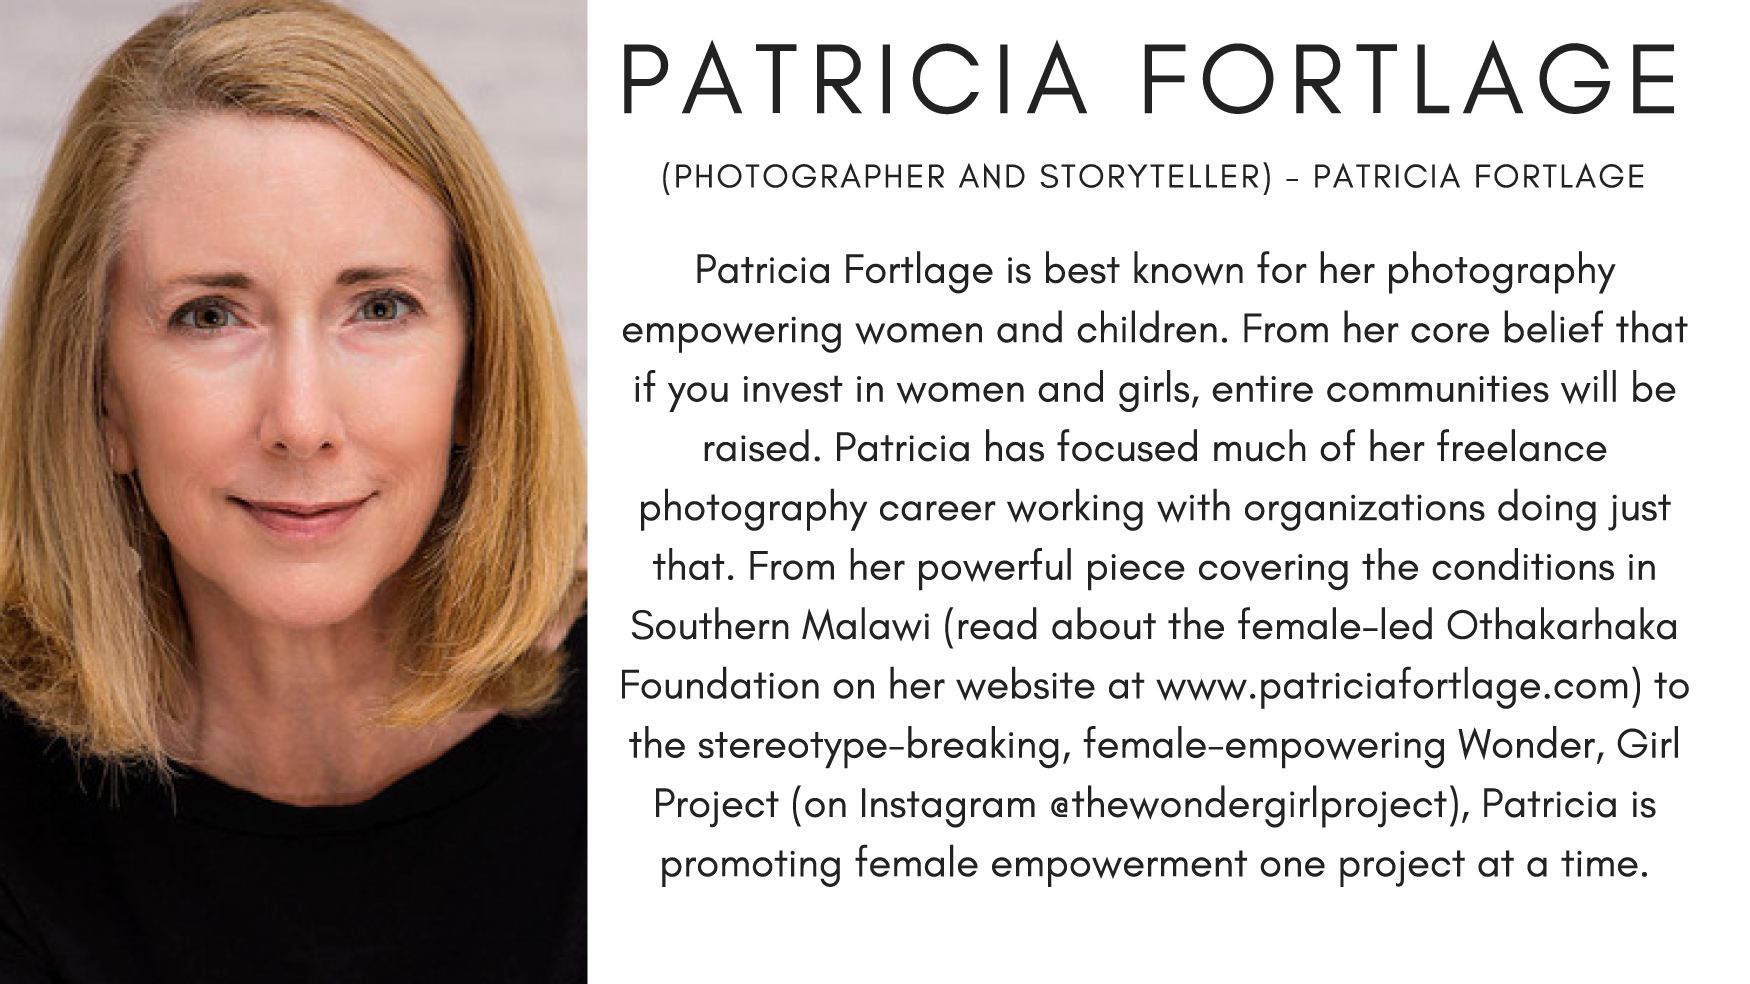 Patricia Fortlage is best known for her photography empowering women and children. From her core belief that if you invest in women and girls, entire communities will be raised. Patricia has focused much of her freelance photography career working with organizations doing just that. From her powerful piece covering the conditions in Southern Malawi (read about the female-led Othakarhaka Foundation on her website at www.patriciafortlage.com) to the stereotype-breaking, female-empowering Wonder, Girl Project (on Instagram @thewondergirlproject), Patricia is promoting female empowerment one project at a time.